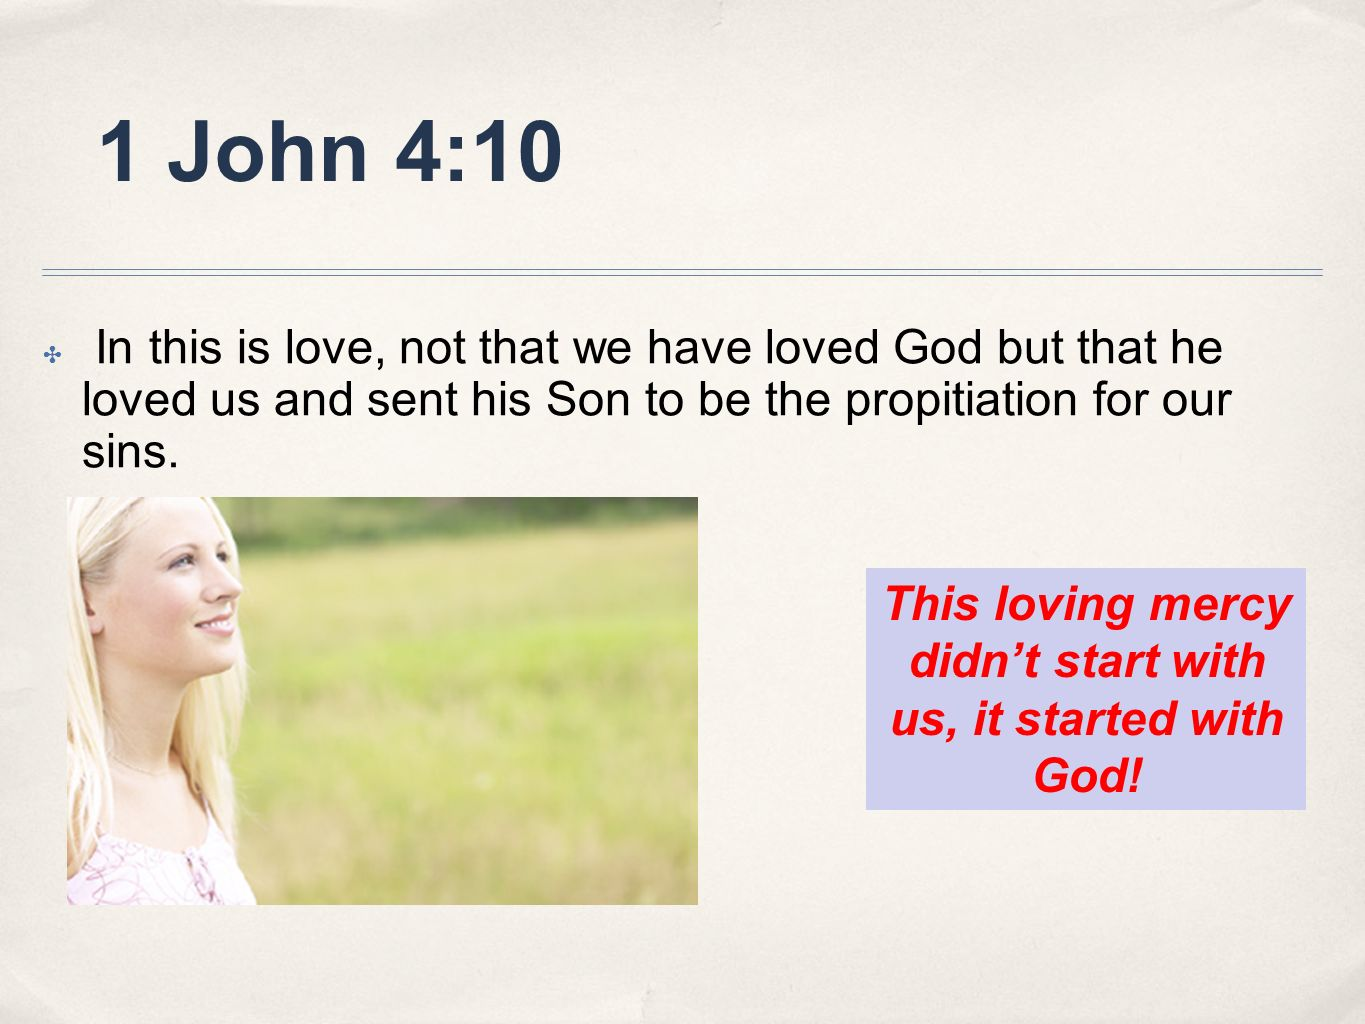 This loving mercy didn't start with us, it started with God!